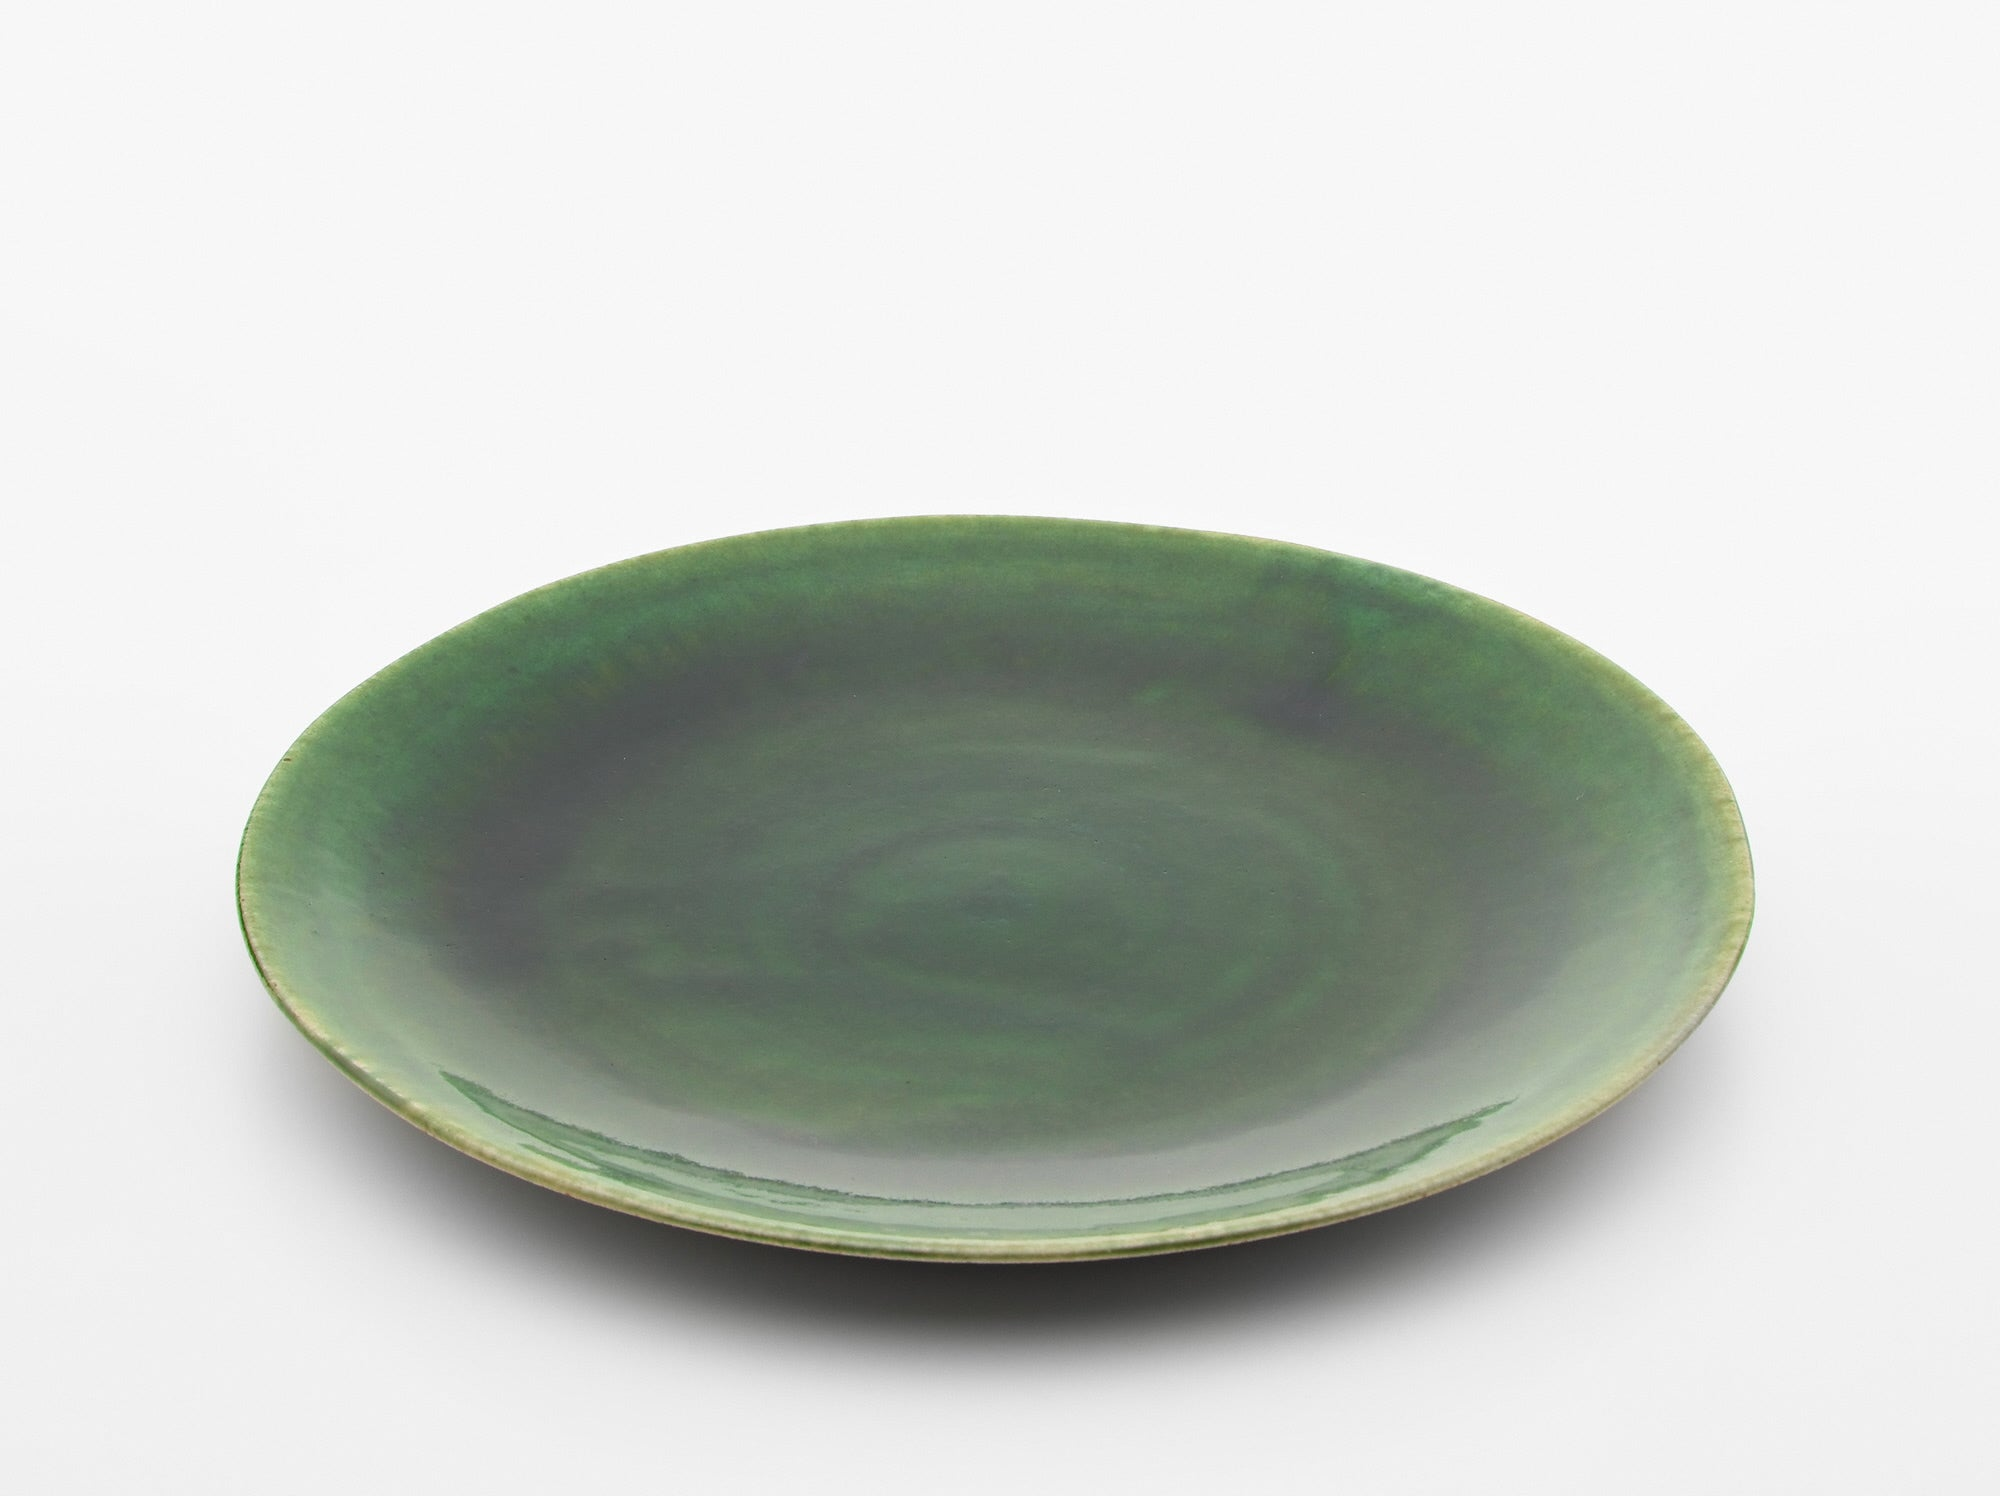 Oribe Large Plate by Fudogama